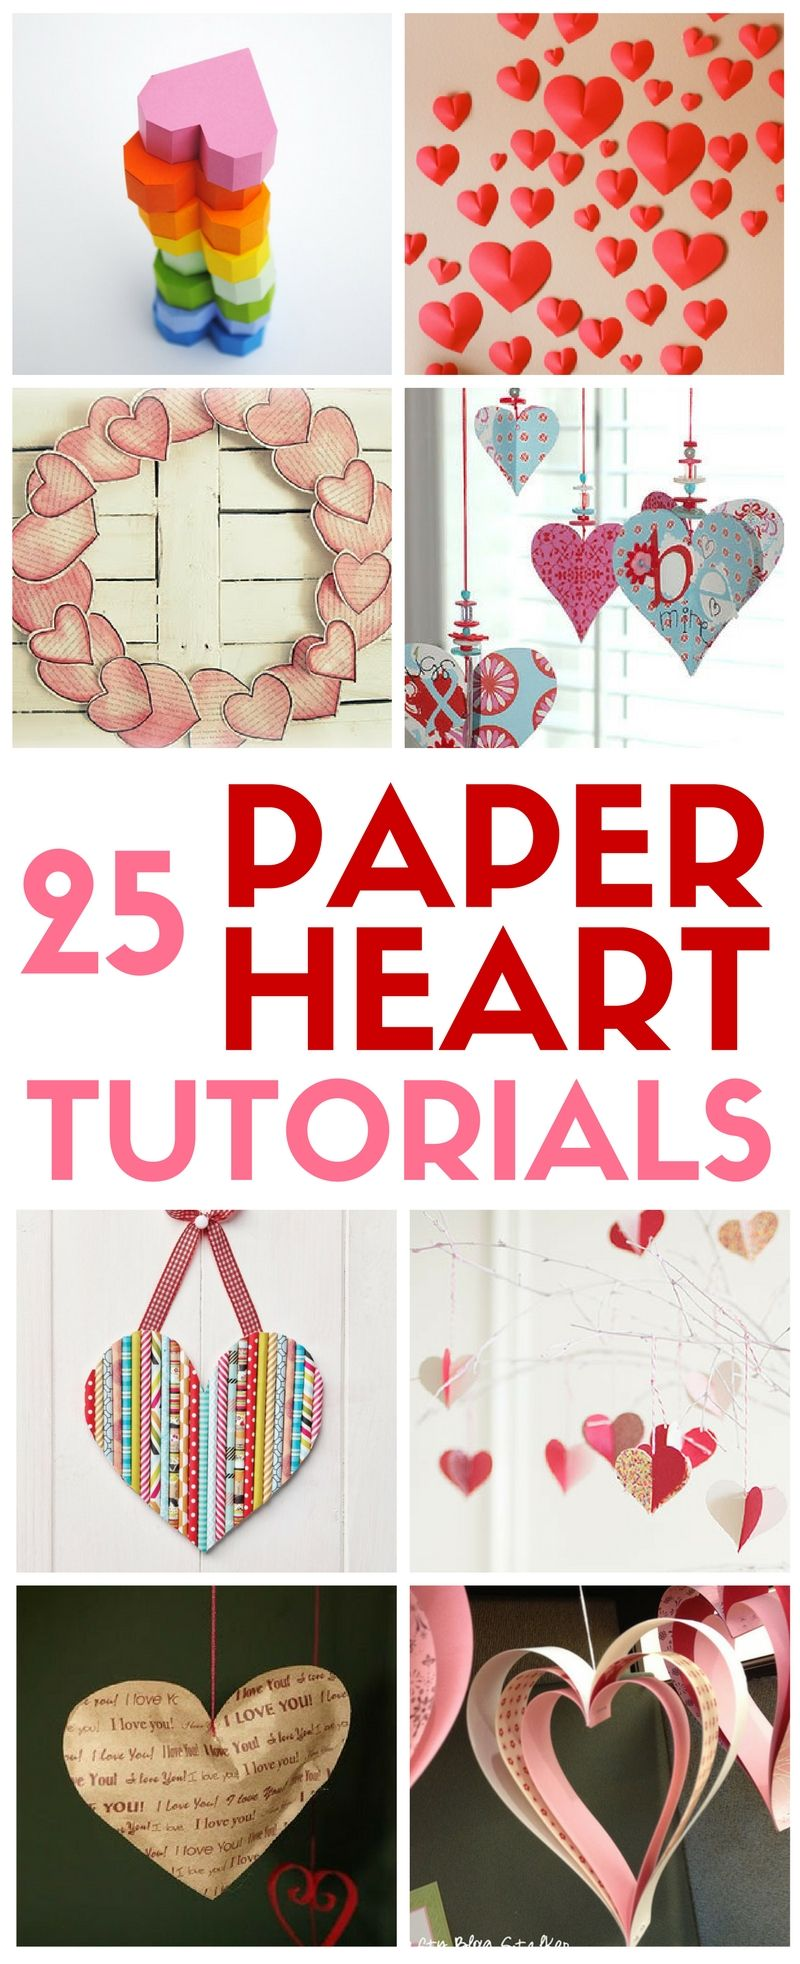 A master class with a photo will teach you how to make valentines - a heart decorated with floral pattern and lace